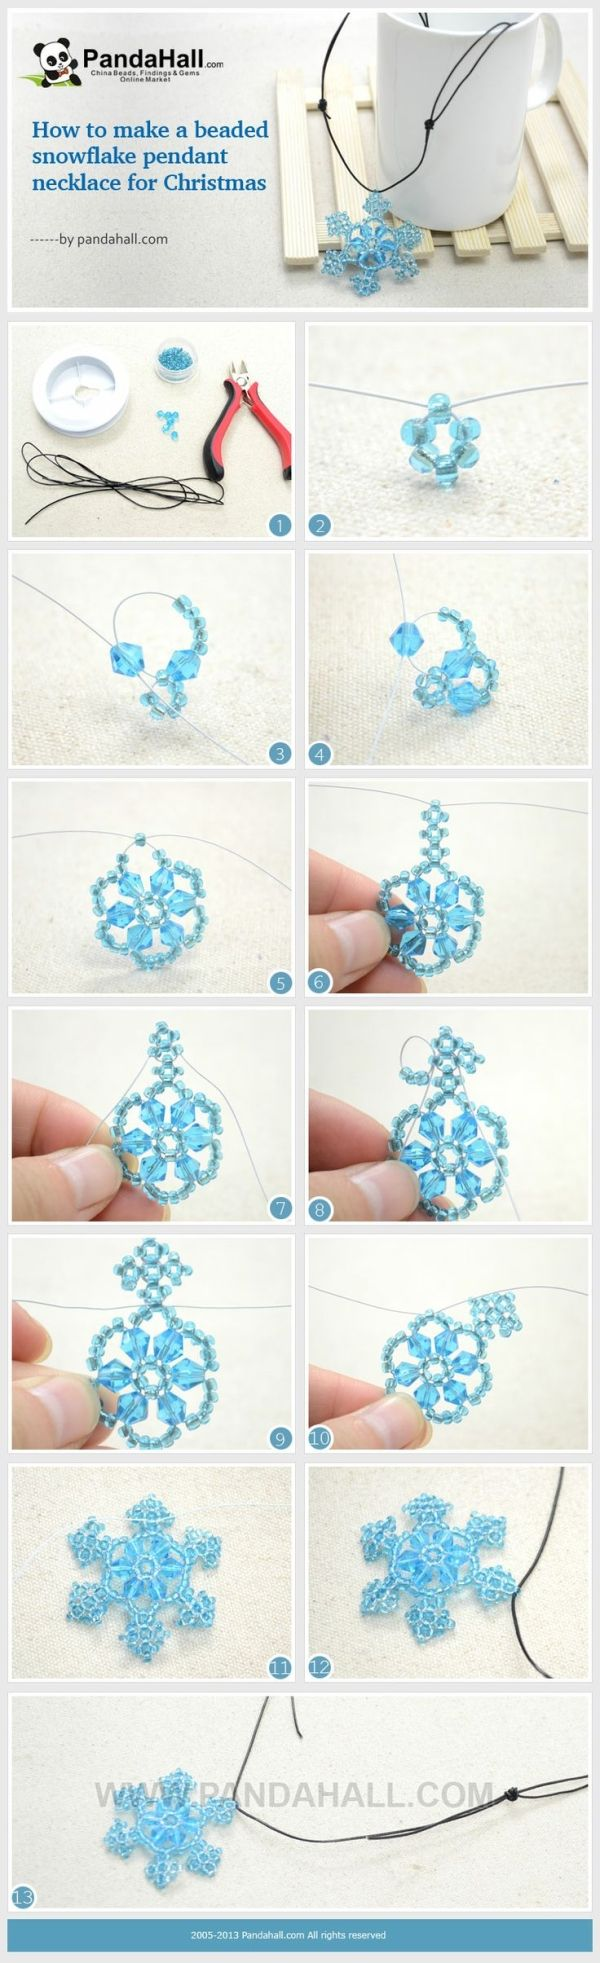 How to Make a Beaded Snowflake Pendant ... | Jewelry Making Tutorial by wanting